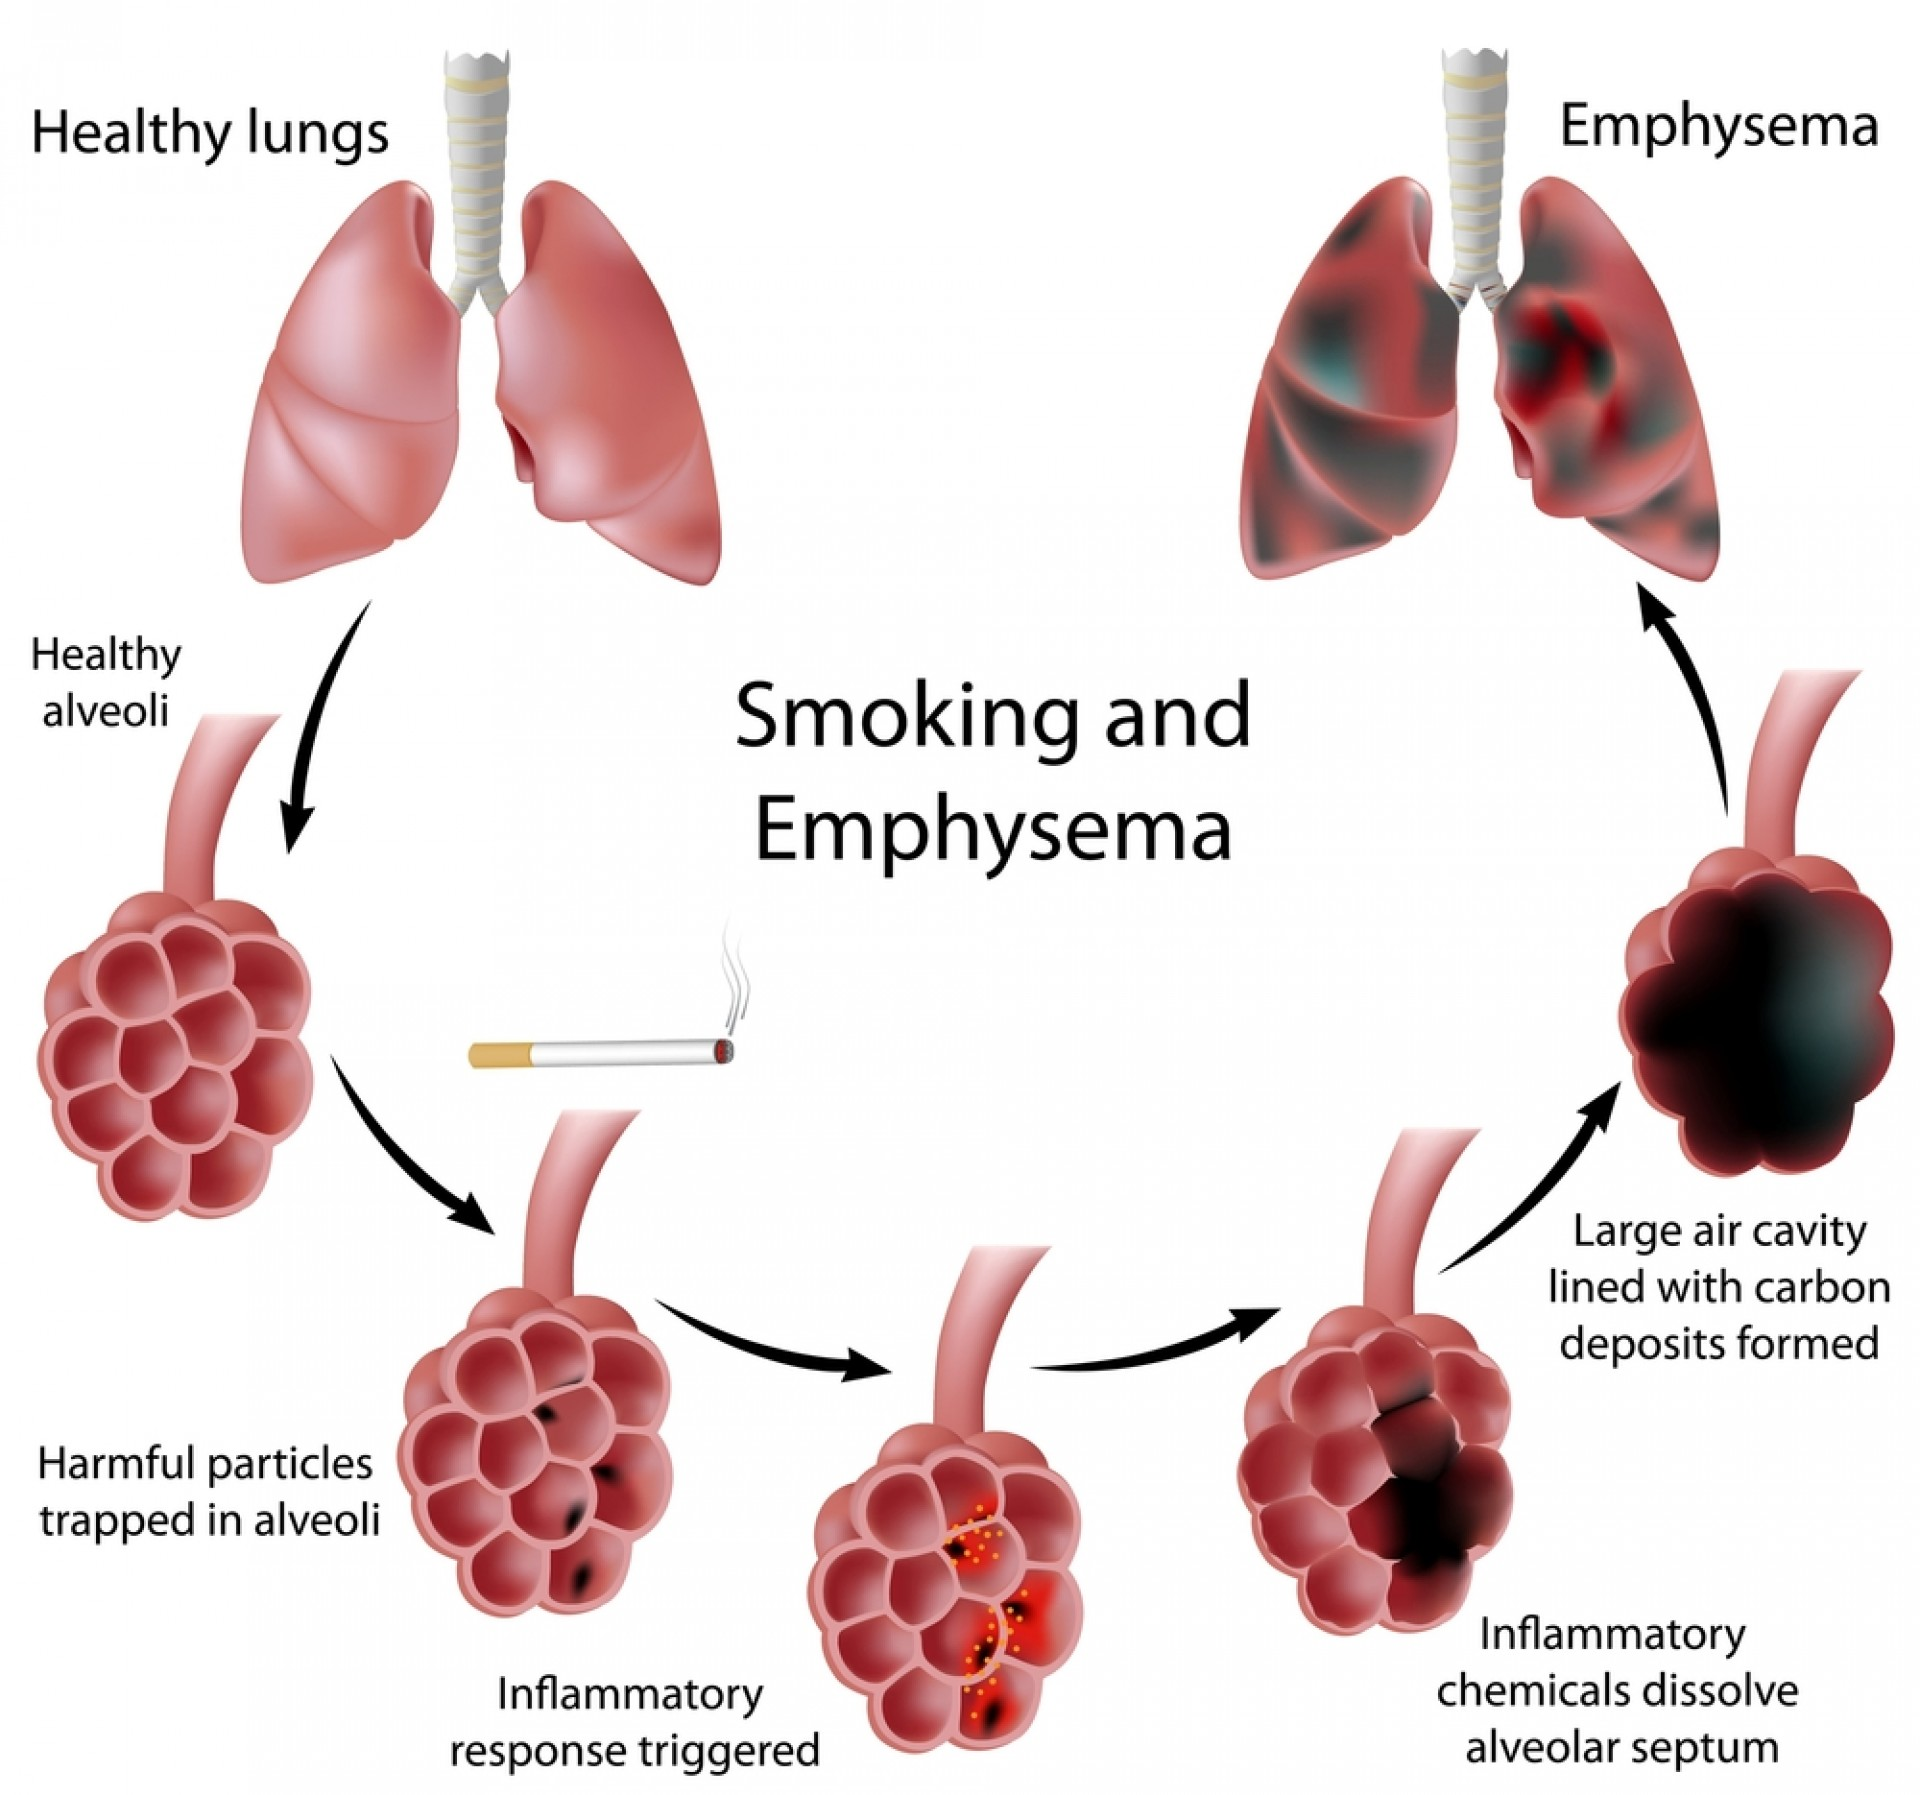 016 Essay On Respiratory Diseases Example Shutterstock 90181159 Fascinating 1920